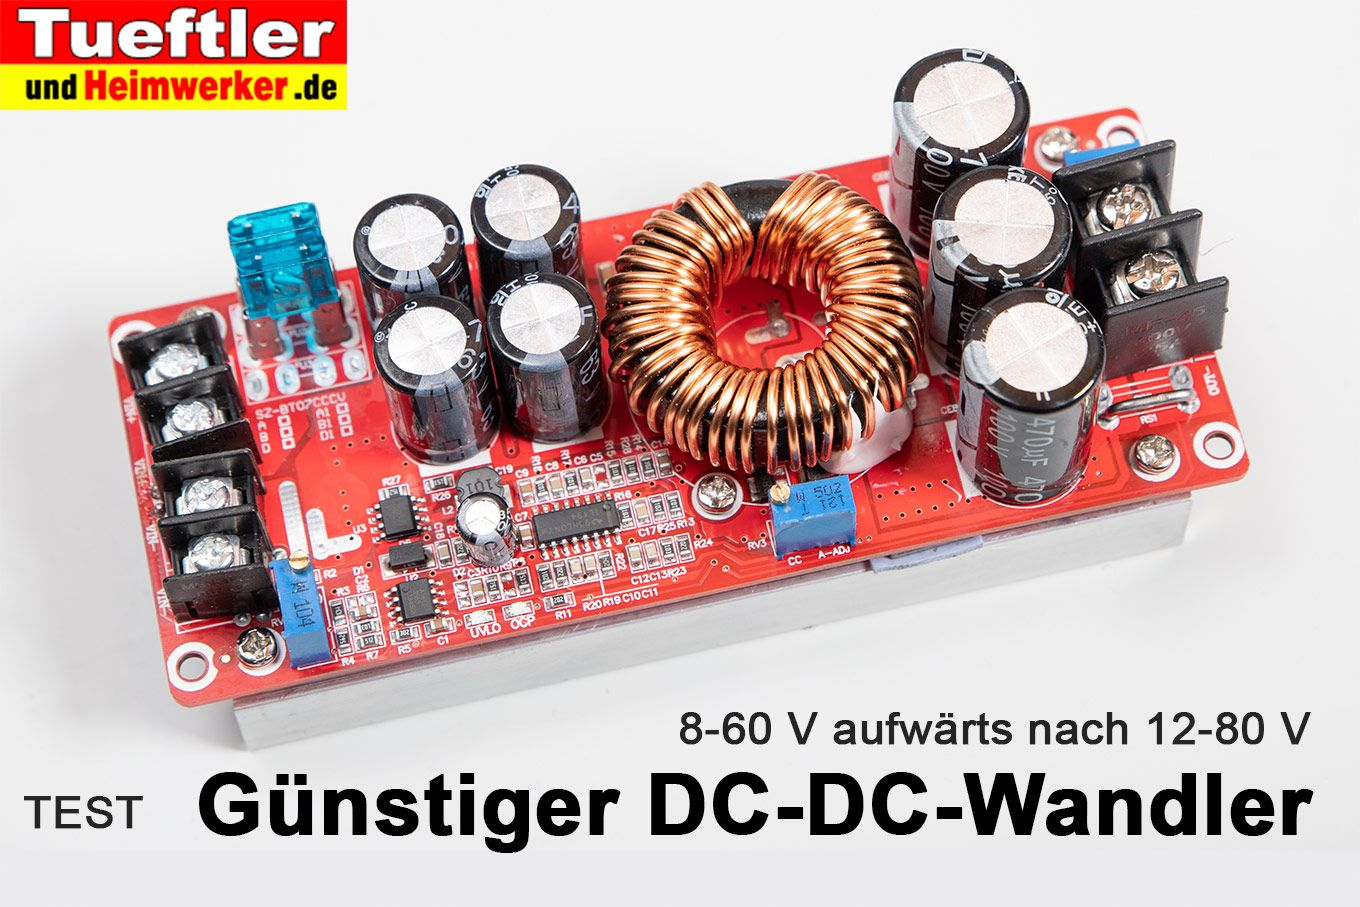 Step-Up-Konverter-DC-DC-Wandler-DC-1200W-20A-Test.jpg